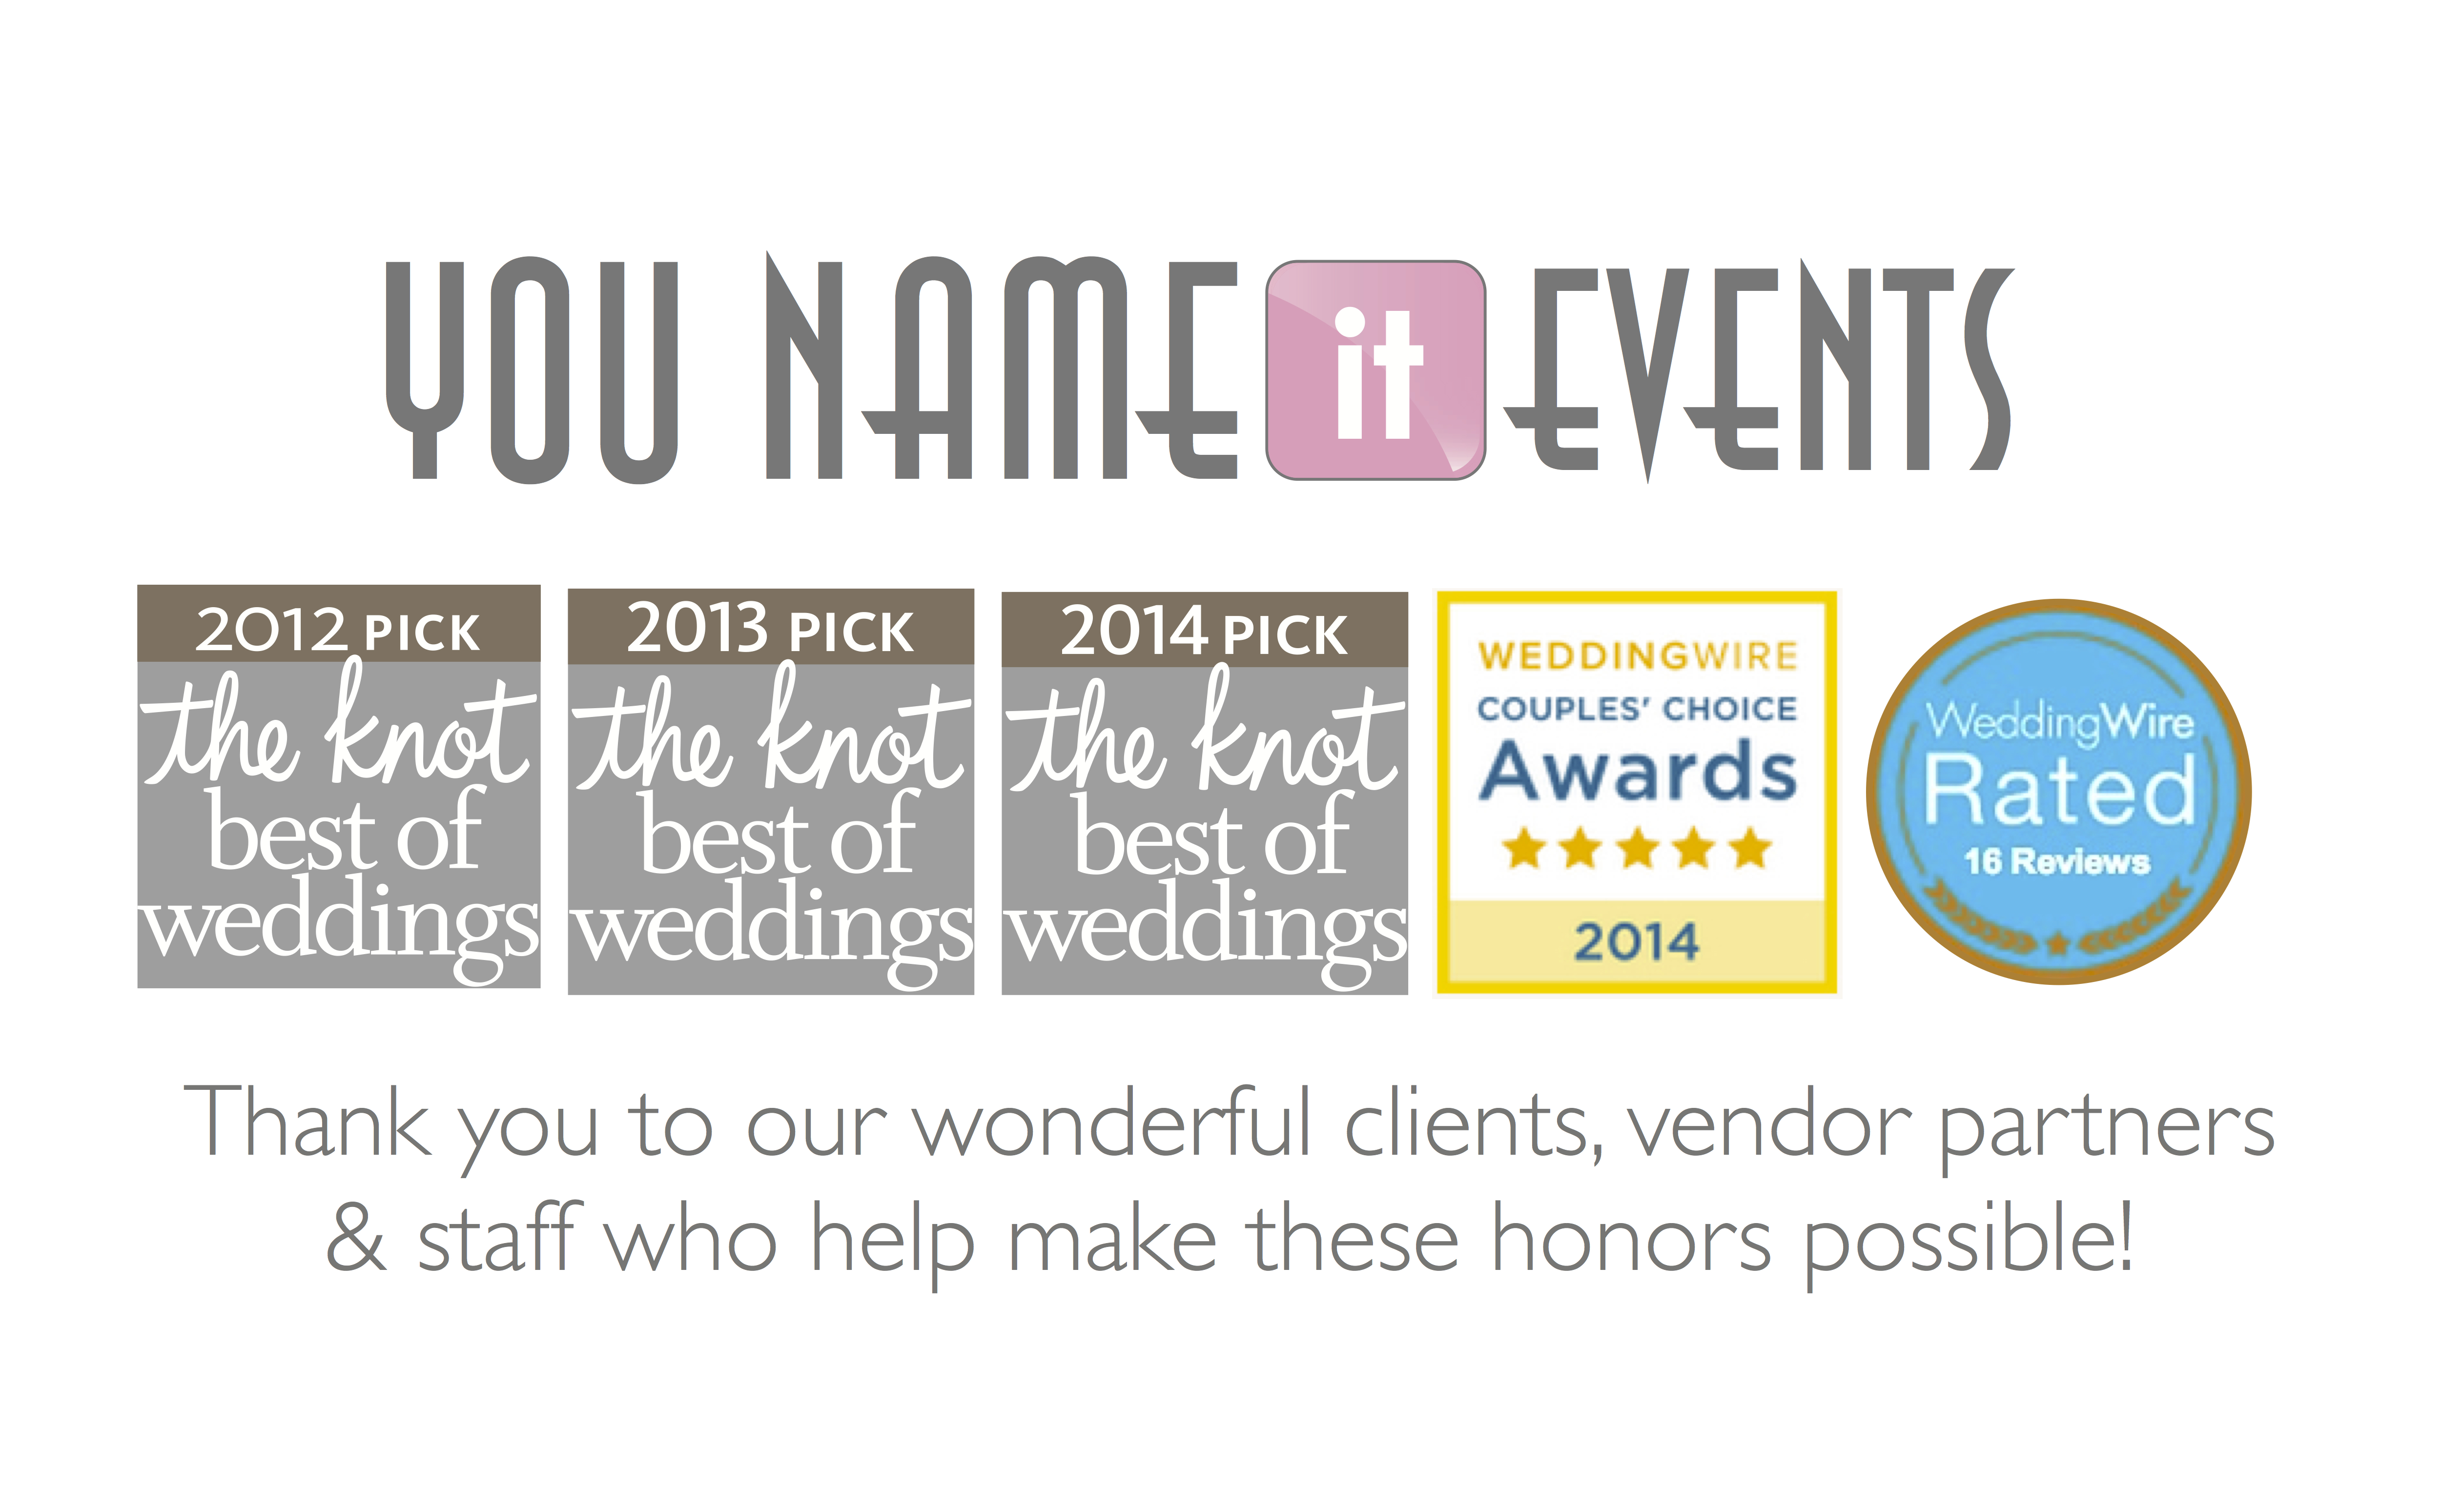 You Name it Events - 2014 Awards